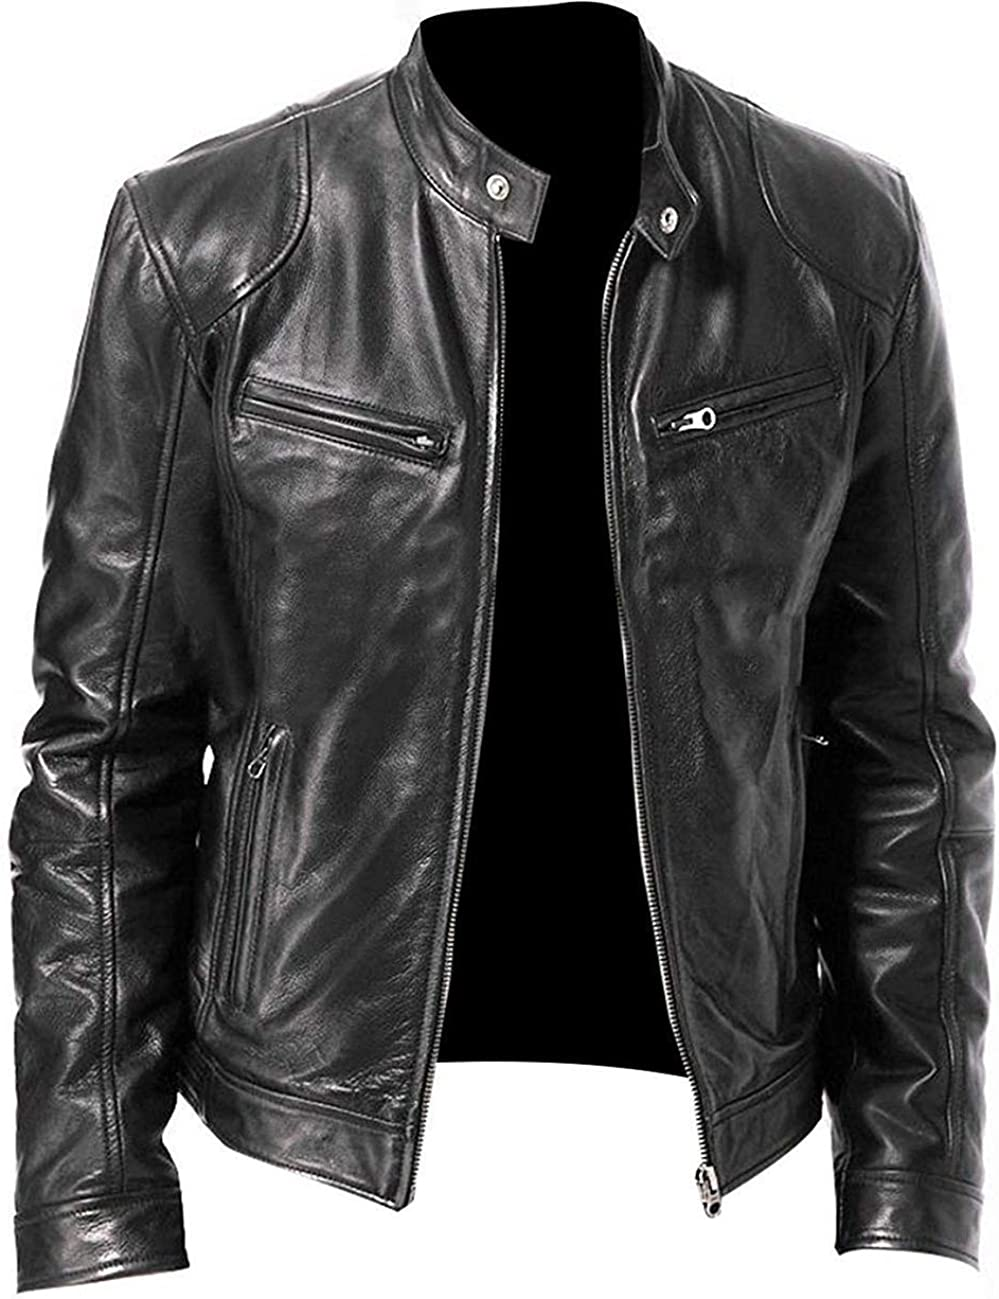 Men's Pu Faux Leather Minneapolis Mall Challenge the lowest price Sword Jacket Lightweigh Black Collar Stand